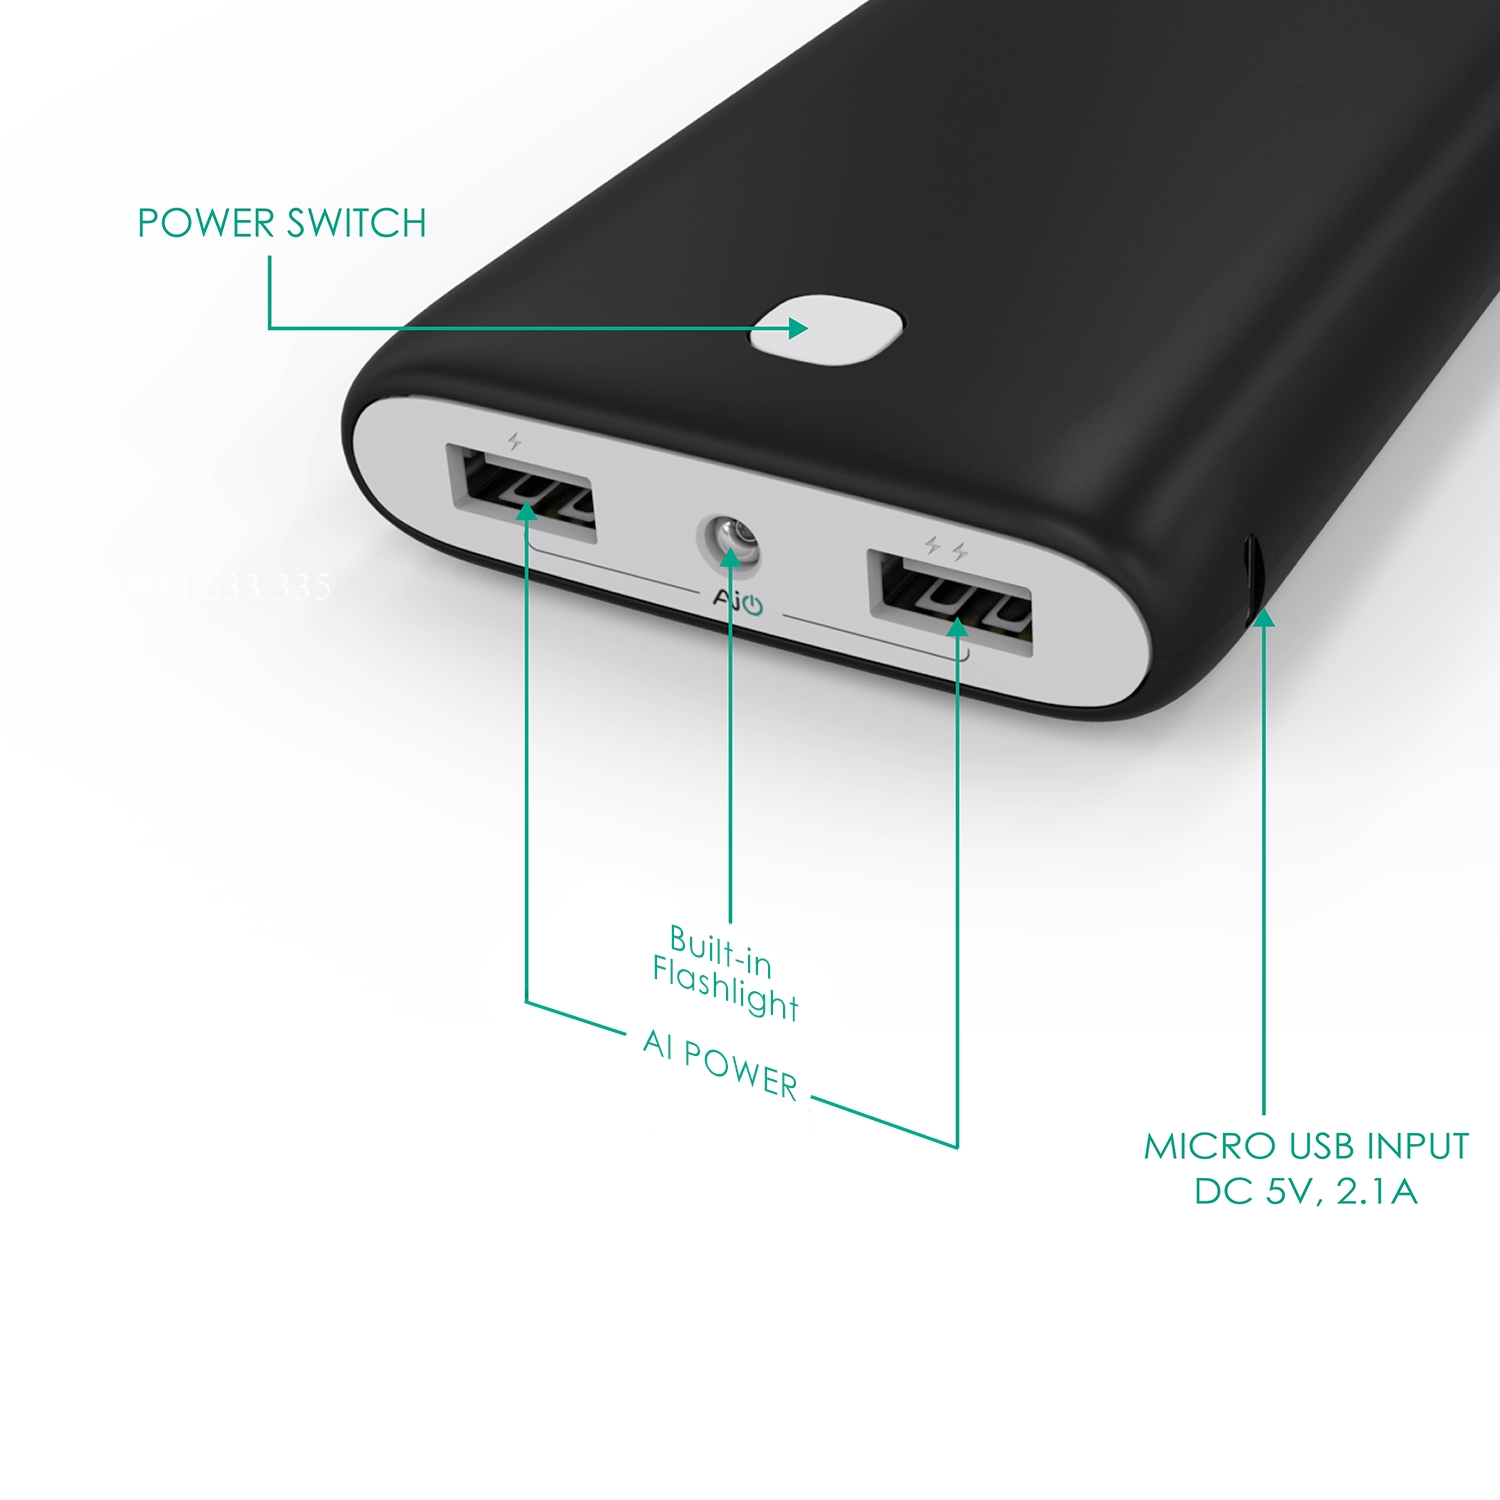 sac du phong aukey pb n15 20000mah chinh hang urban city